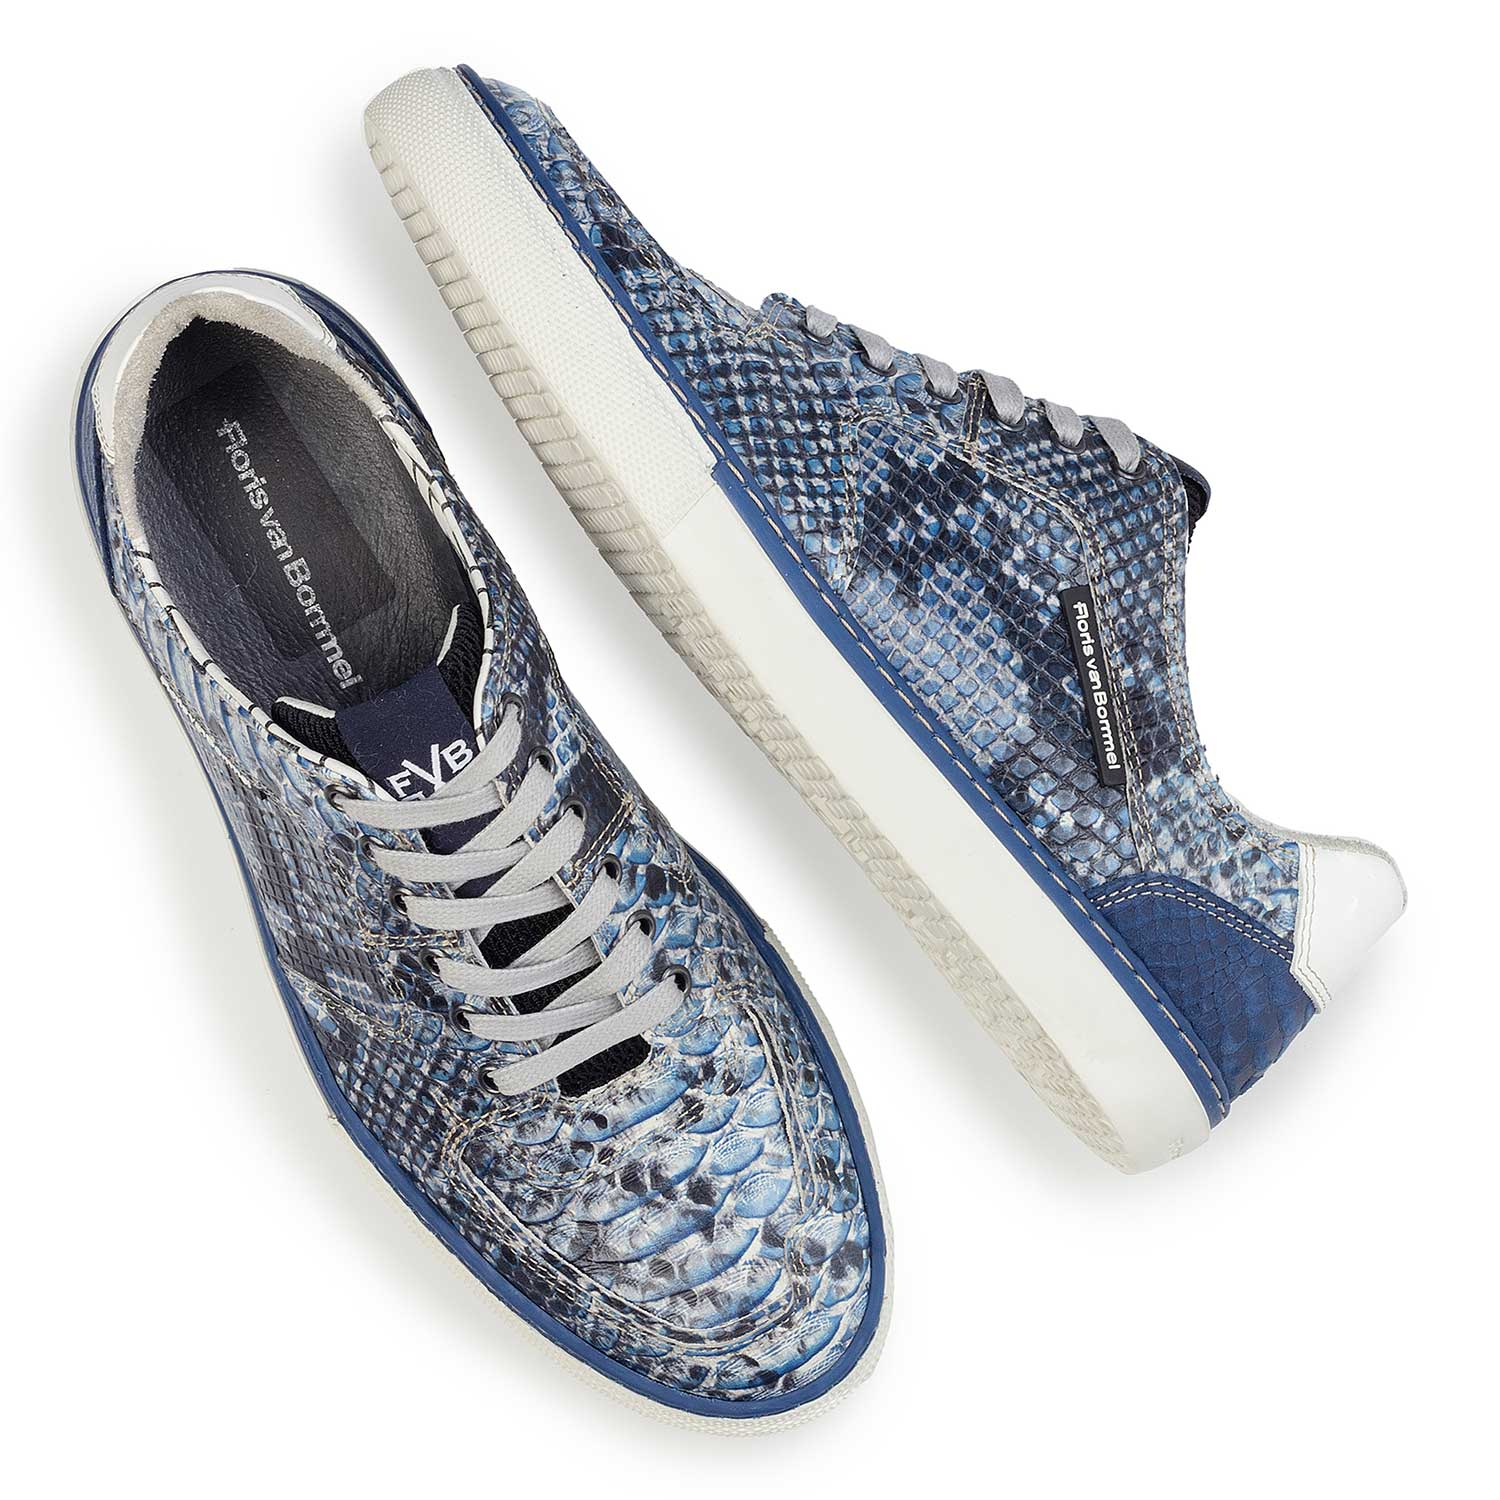 16252/02 - Blue leather lace shoe with a snake print